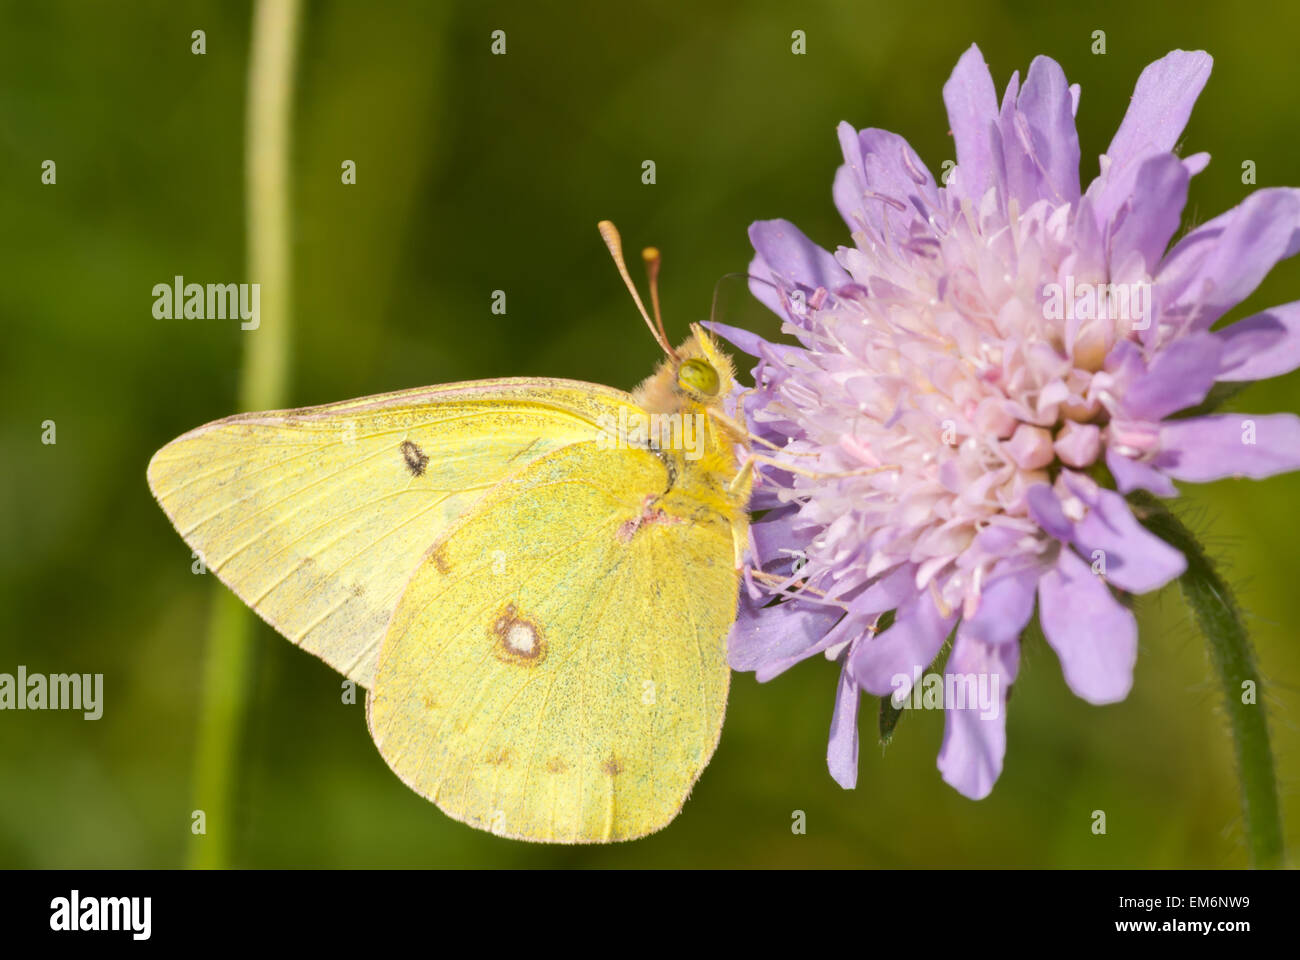 Clouded sulphur butterfly, Colias philodice, feeding from a field scabious flower, Riverlot 56 Natural Area, Alberta - Stock Image